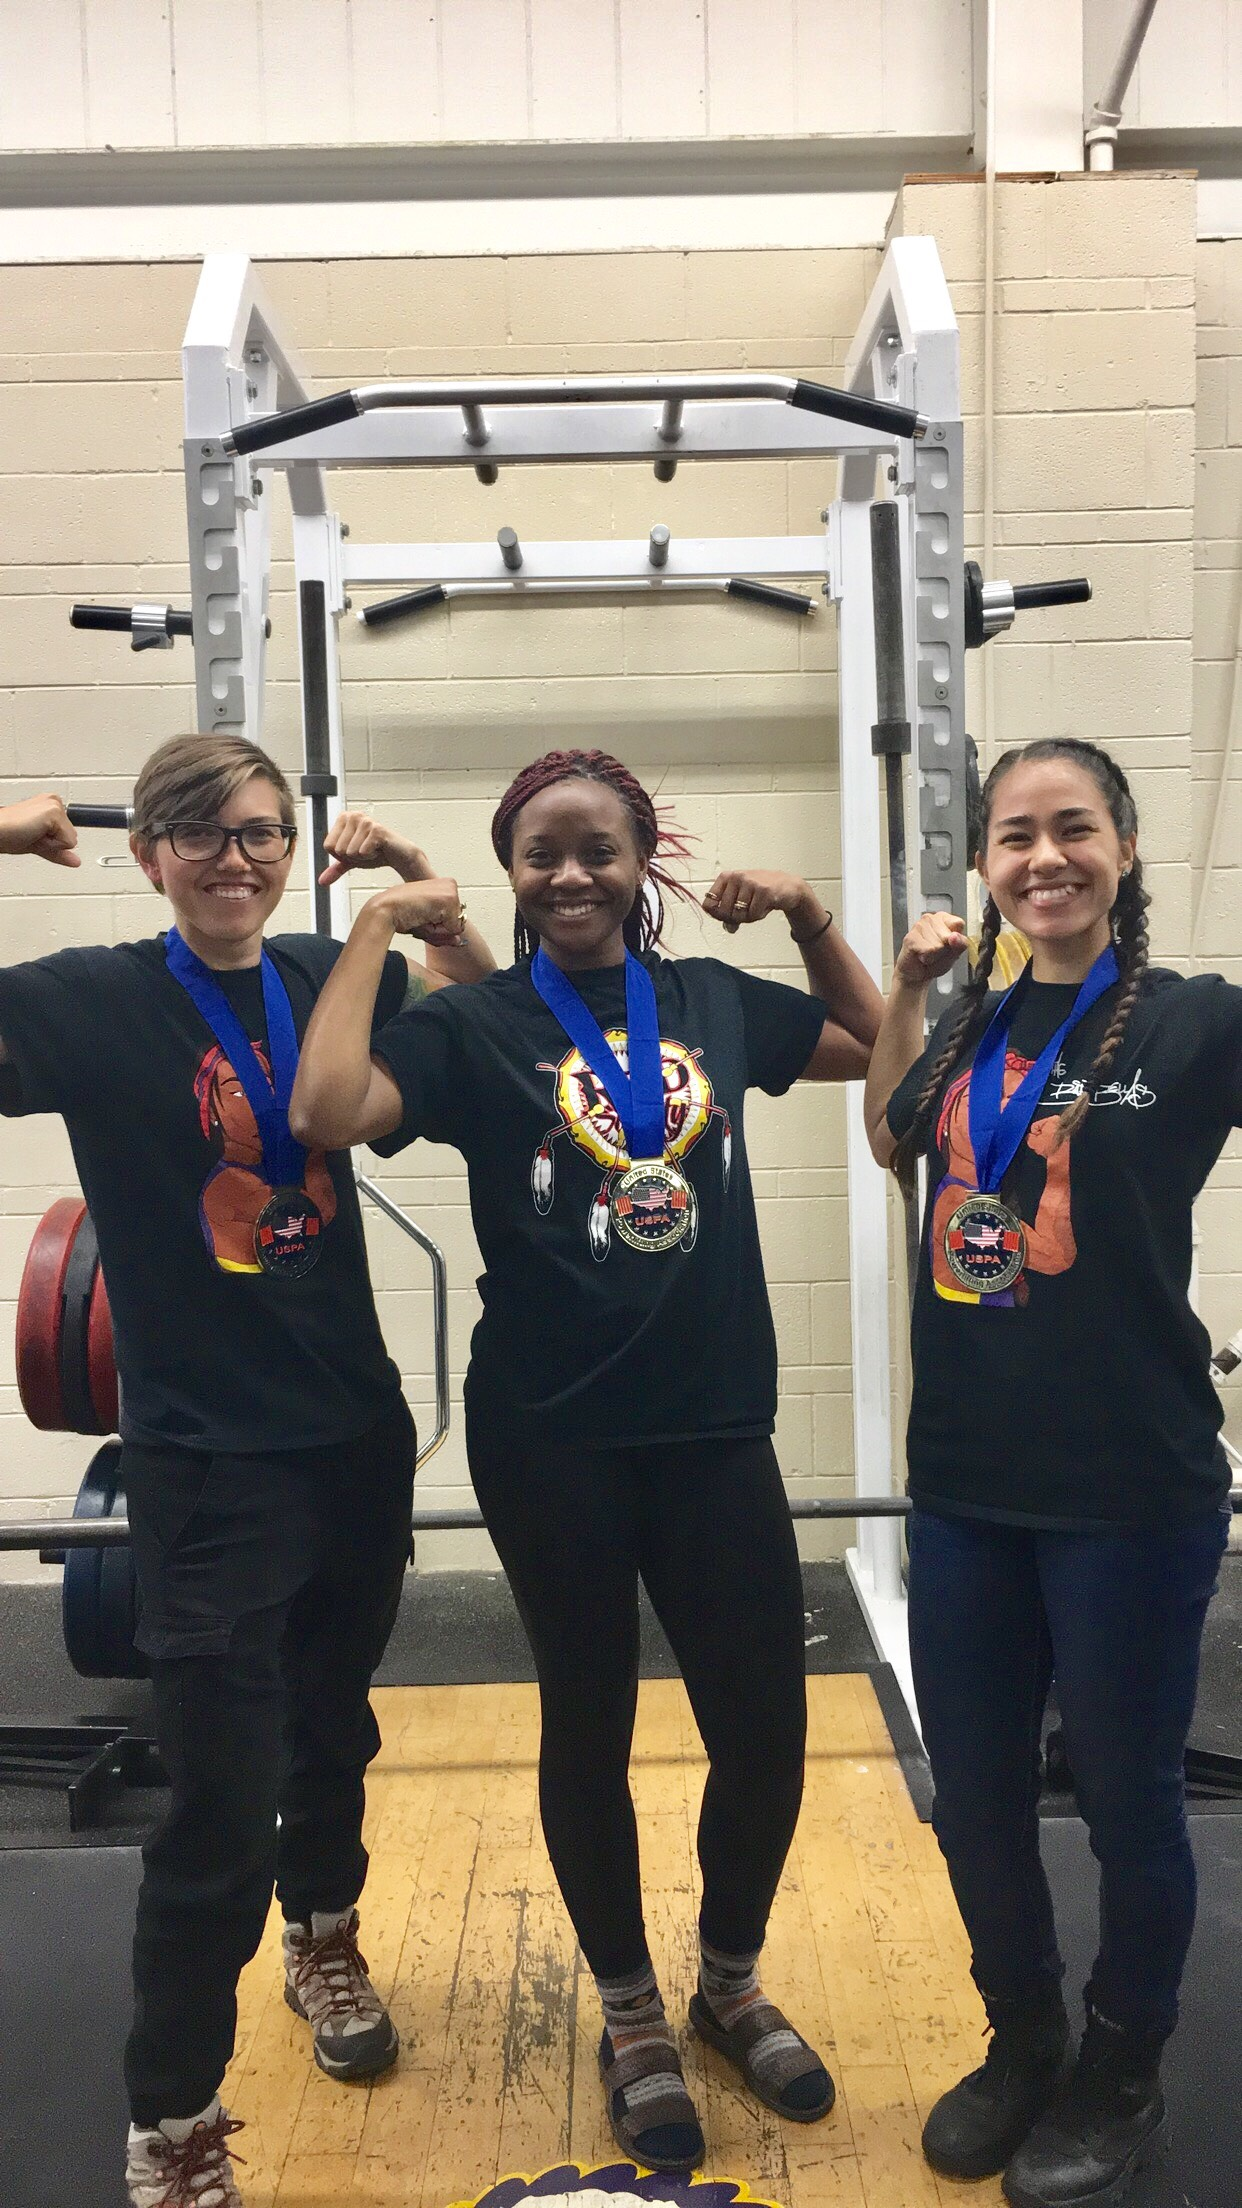 Three Haskell Women Earn Gold at Collegiate Powerlifting Meet